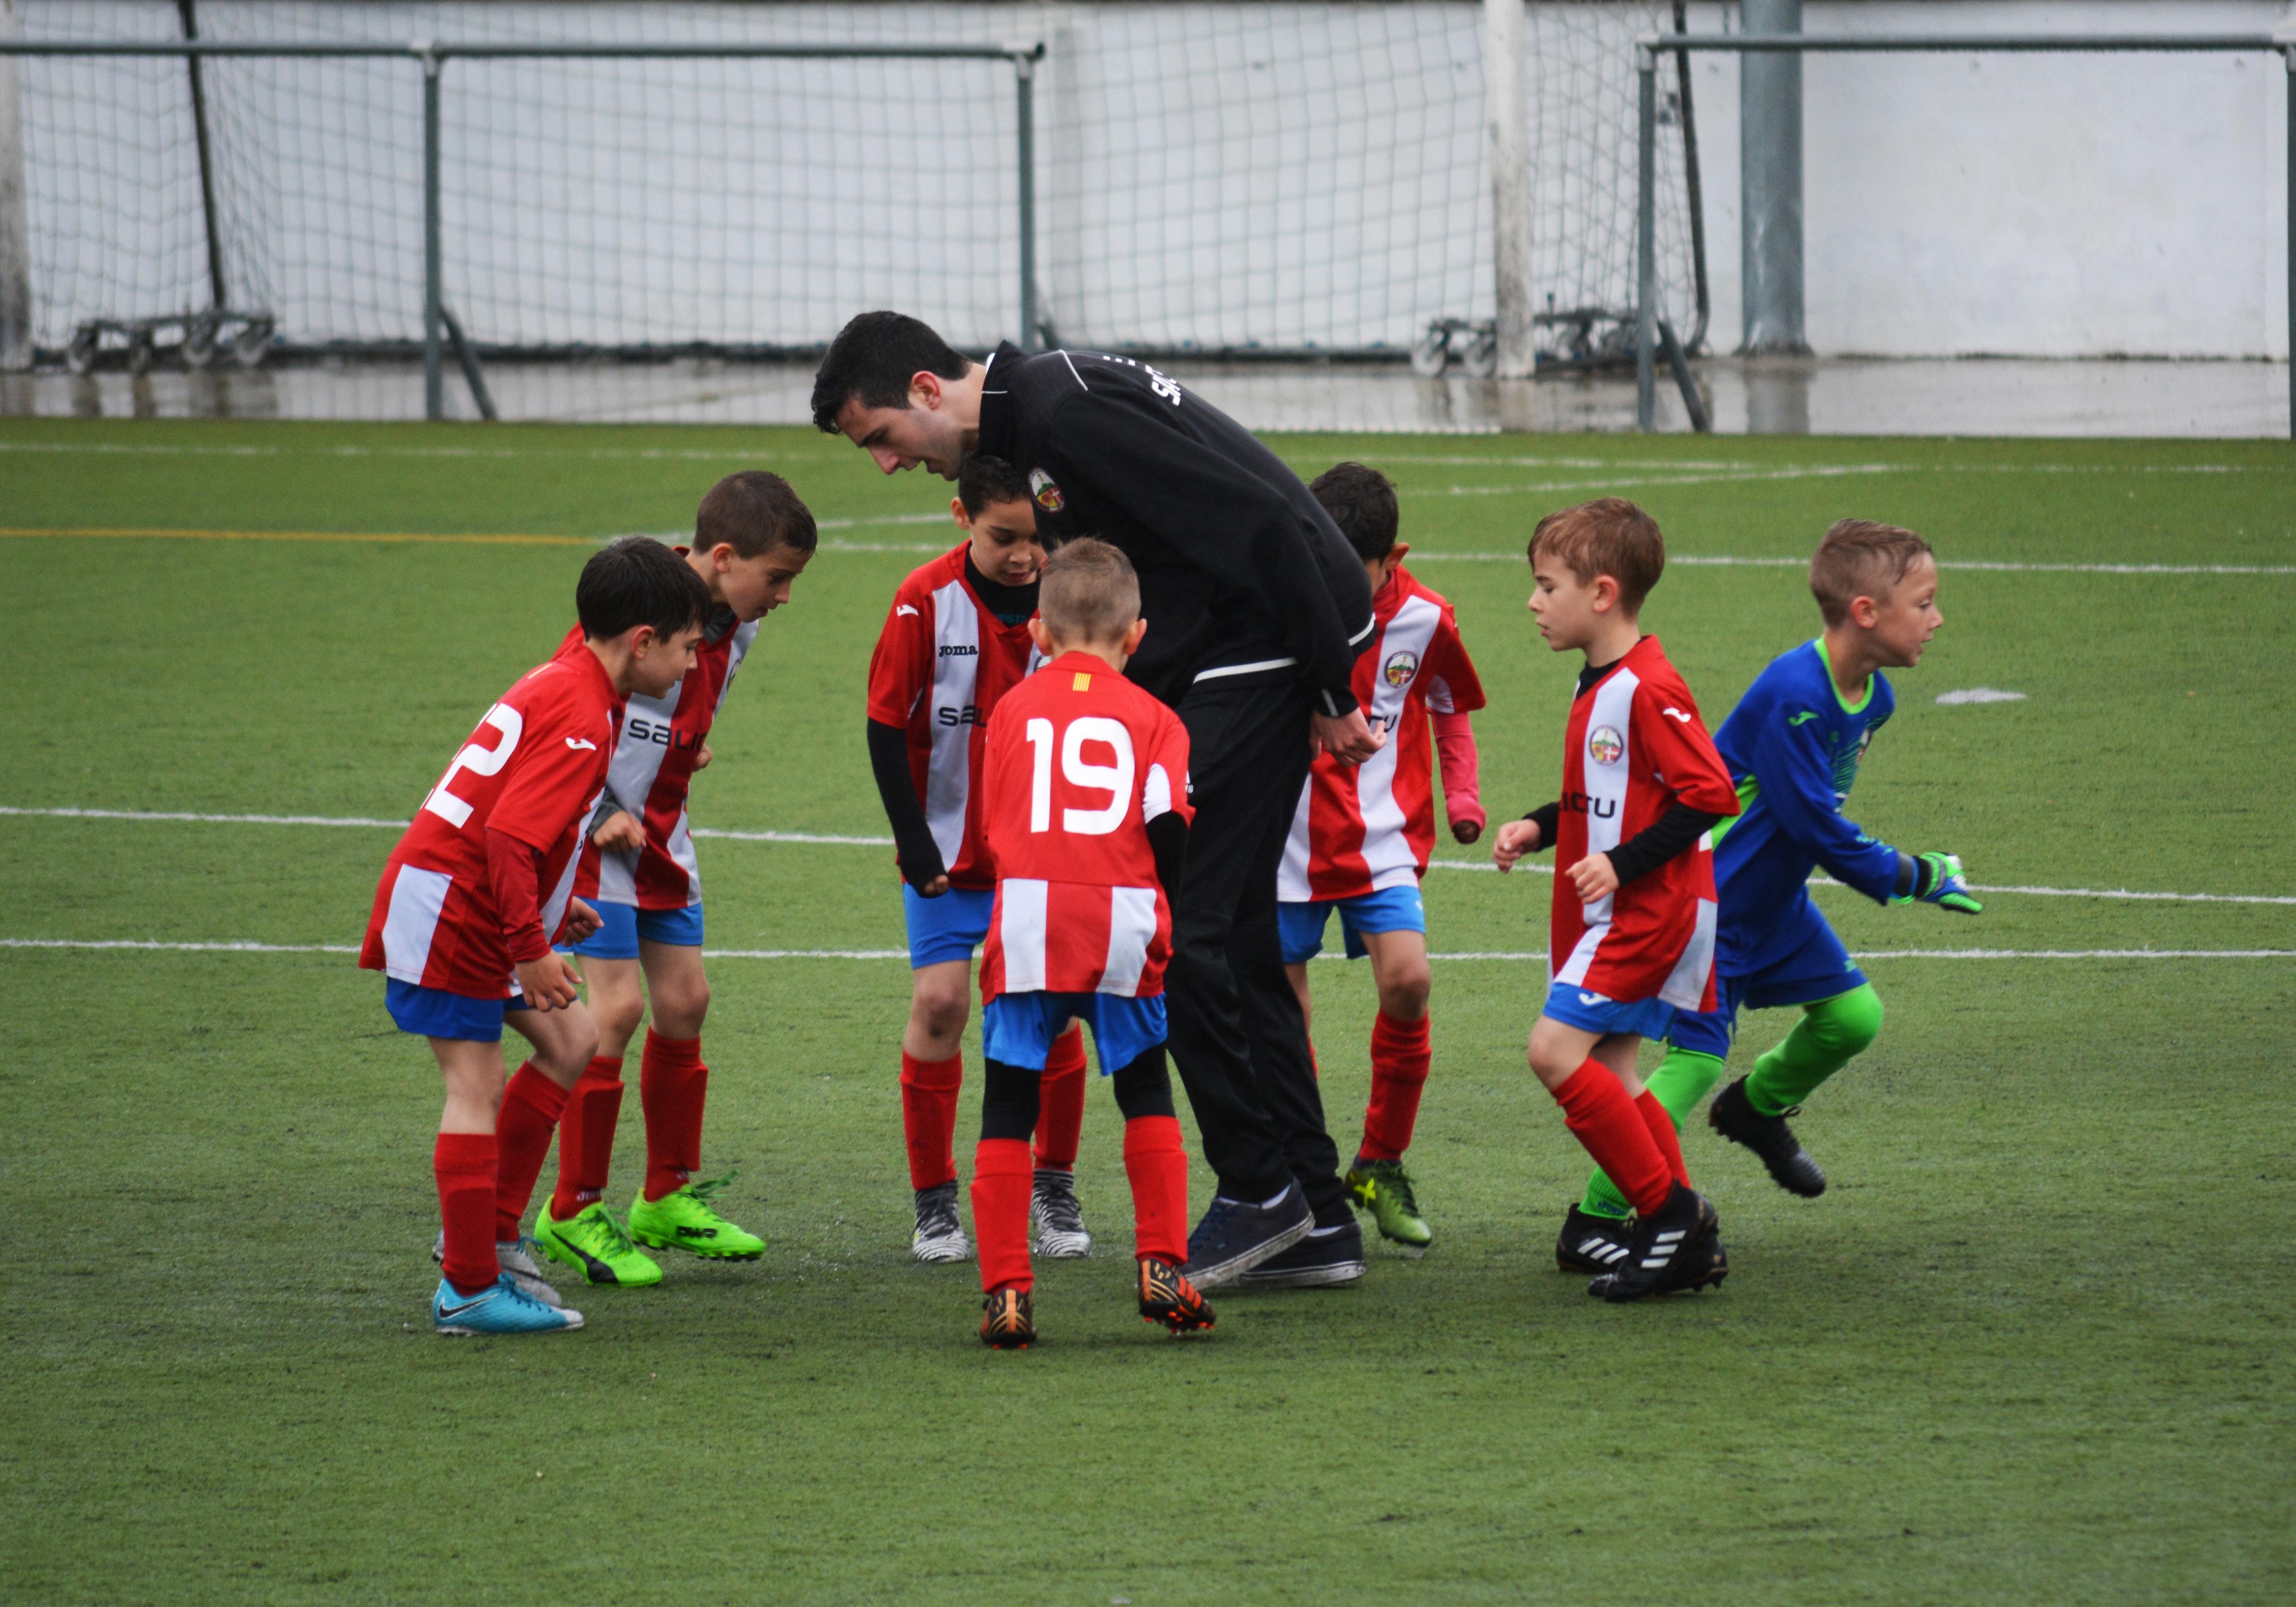 Young soccer team with their coach